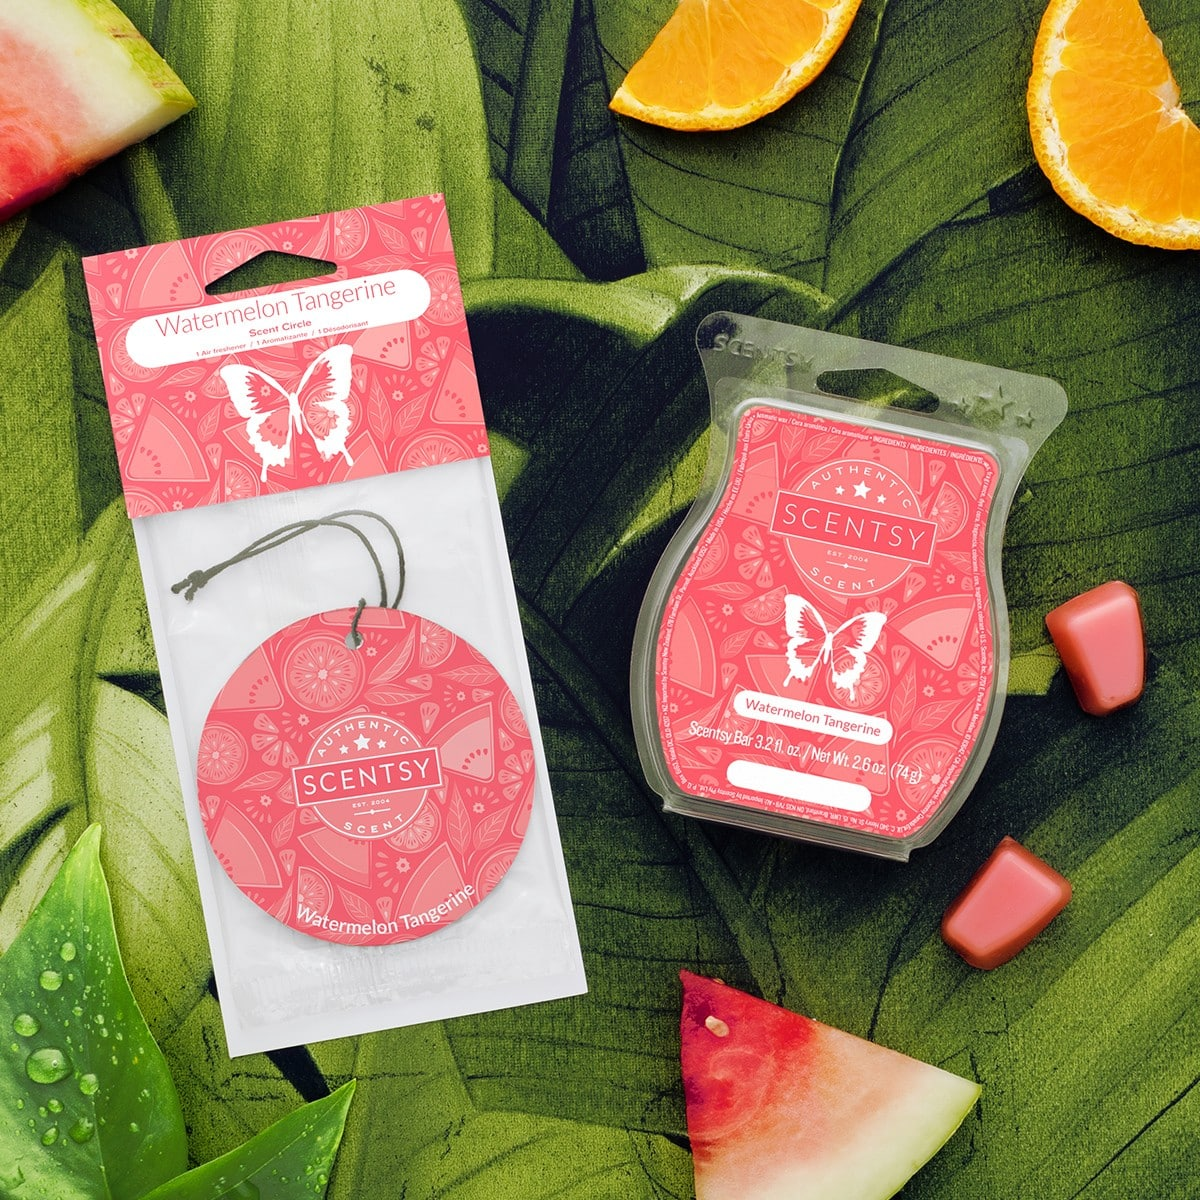 WATERMELON TANGERINE SCENTSY FRAGRANCE